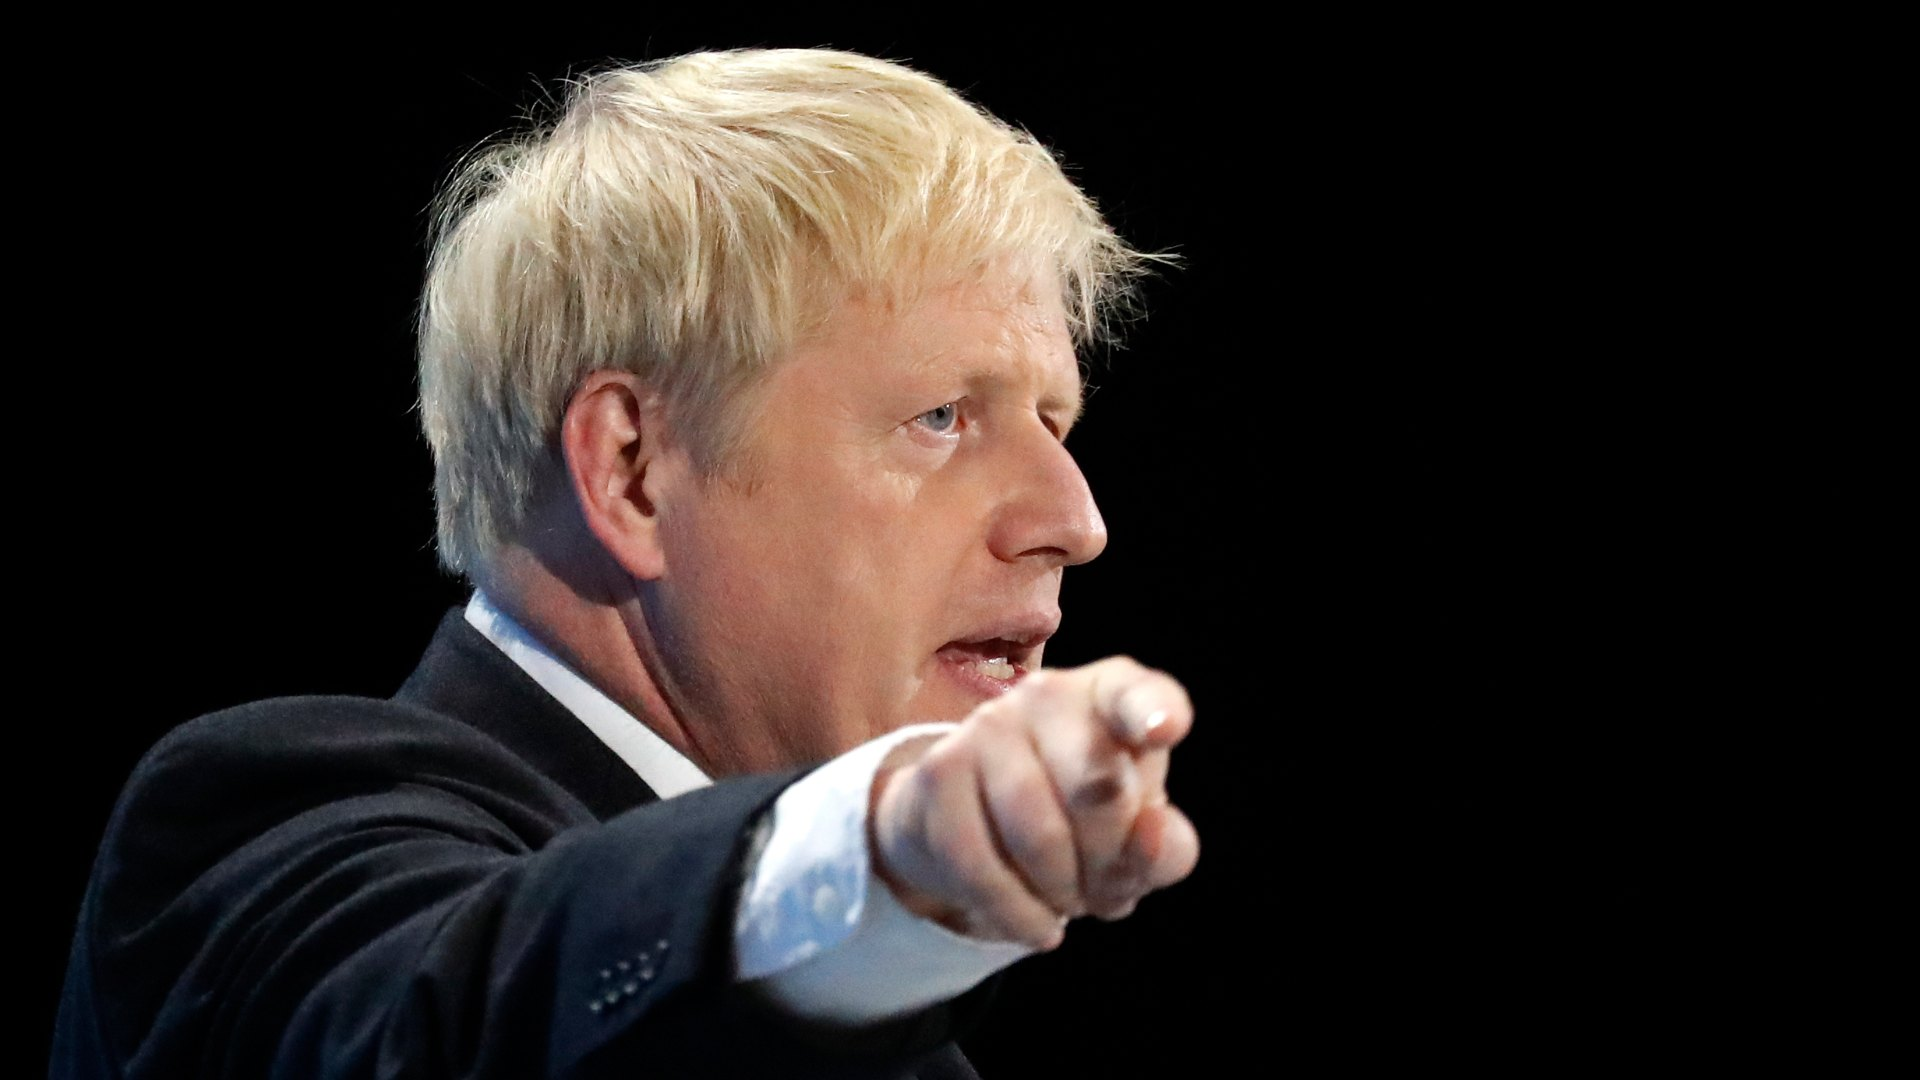 Boris Johnson sucede a Theresa May como primer ministro de Reino Unido